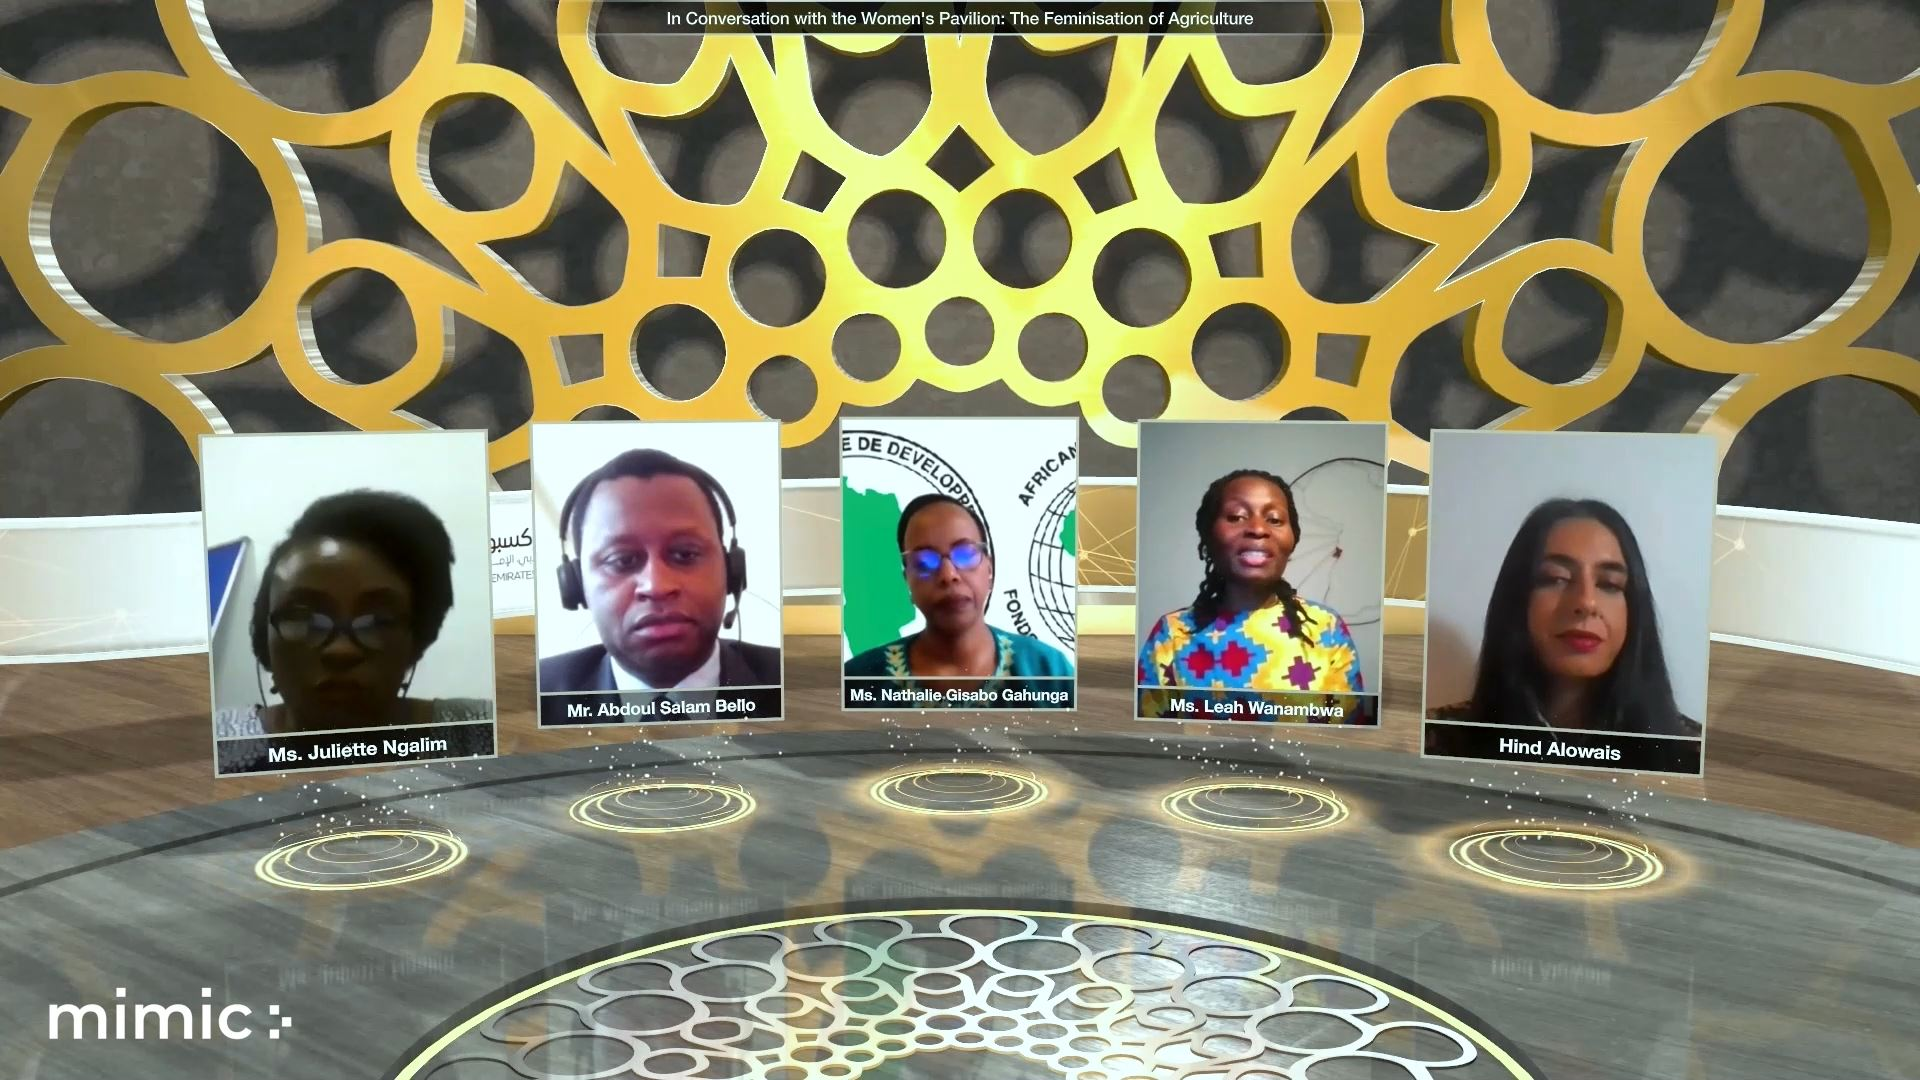 expo 2020 food agriculture livelihoods virtual event panel discussion